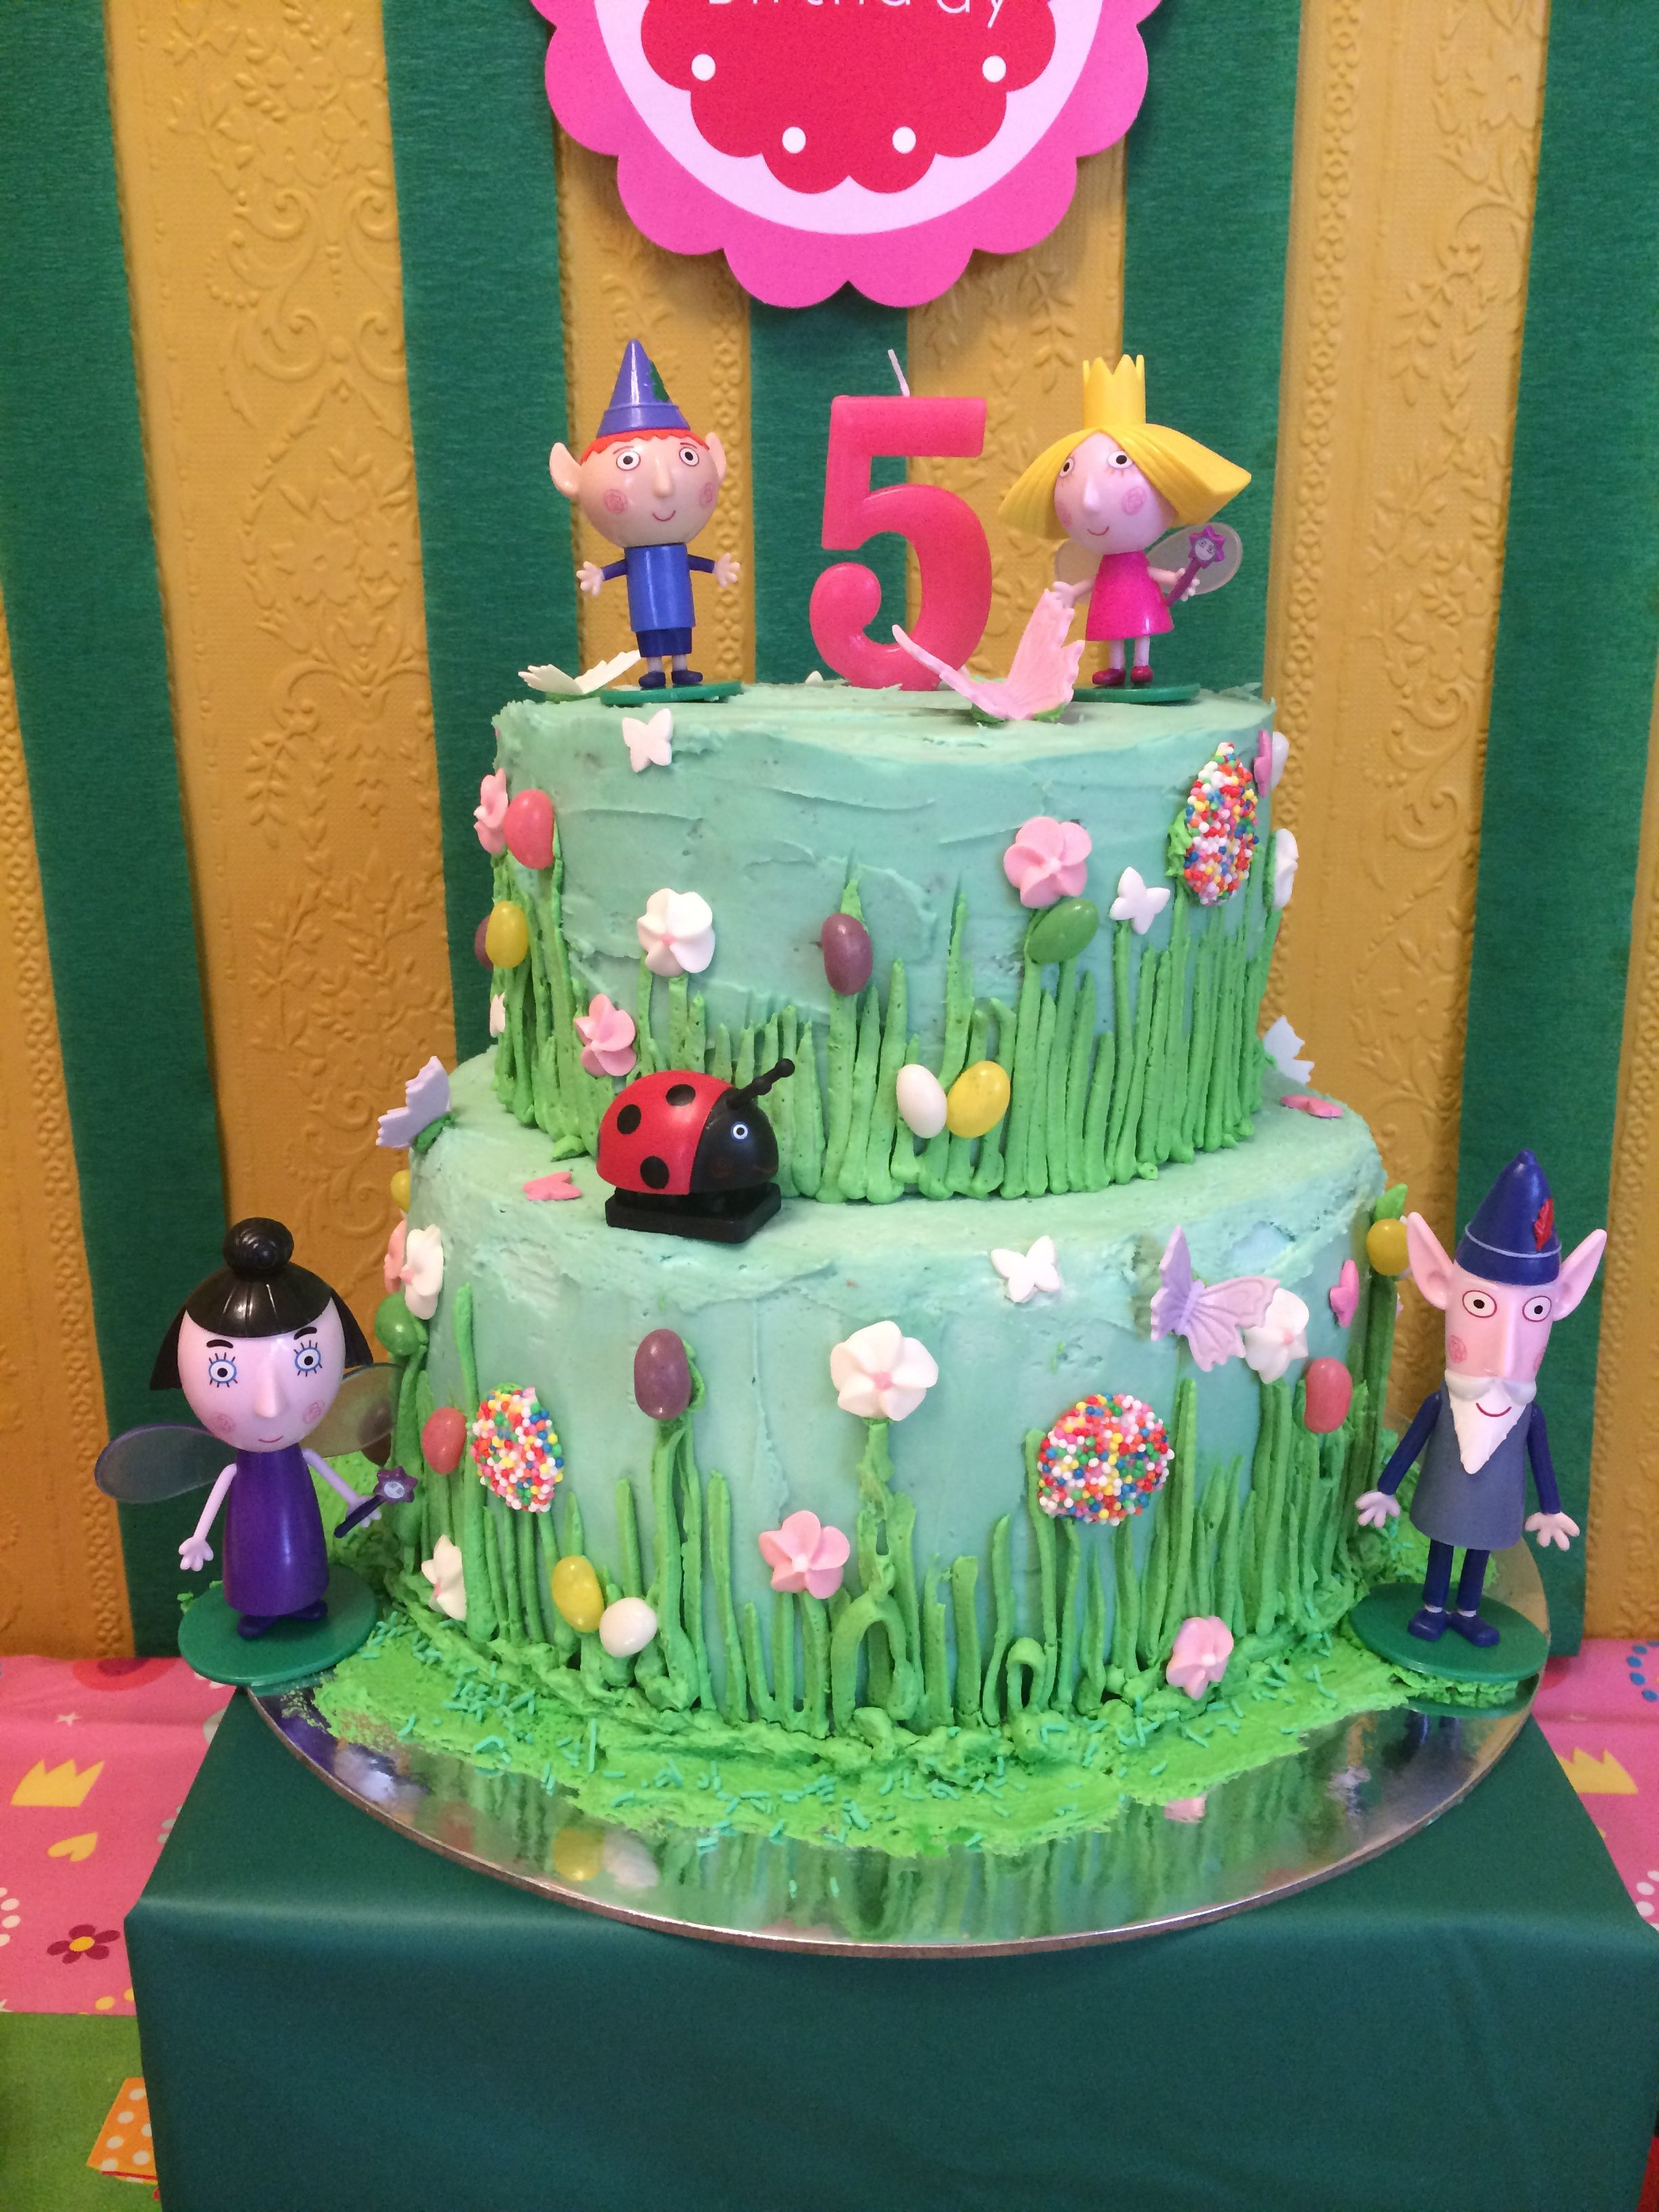 Ben and holly buttercream cake with figurines natalia ben and holly buttercream cake with figurines amipublicfo Images